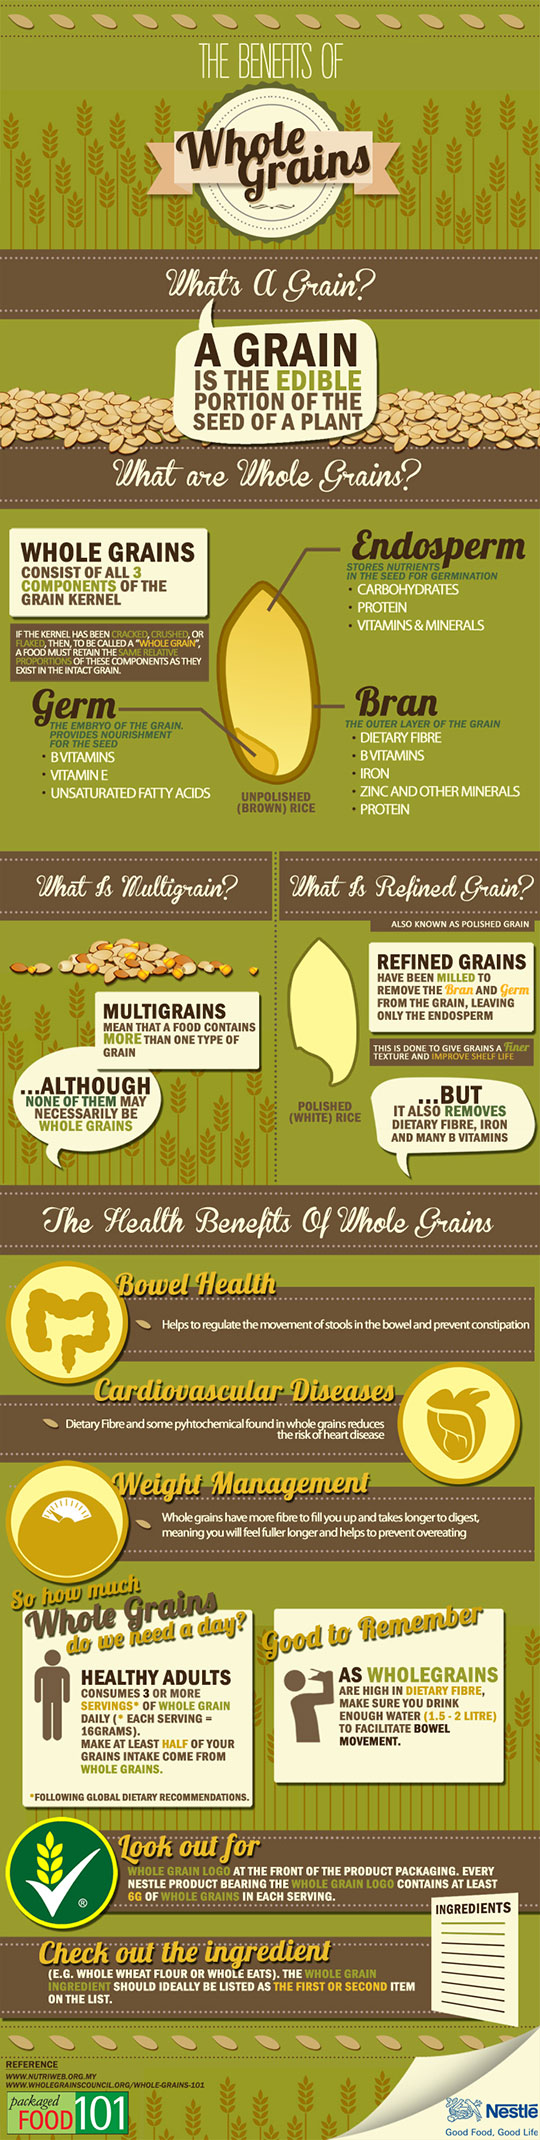 Whole Grains Health Amp Benefits